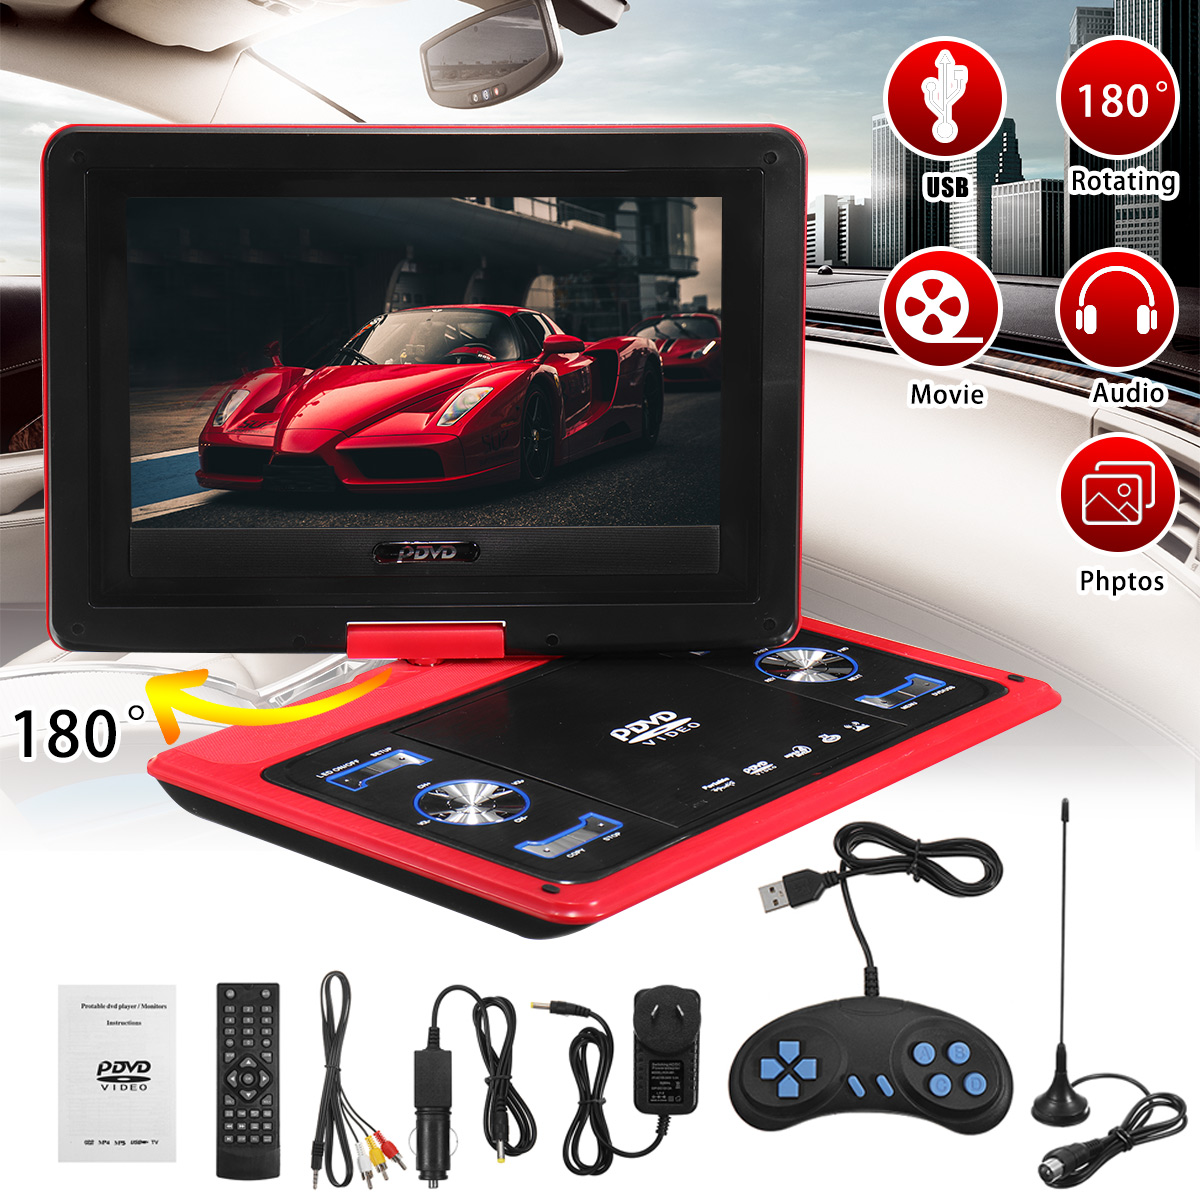 9Pcs 13.8 inch Portable DVD Player Rotate Digital Multimedia Player USB TV Support Game Function for Car Home Audio System9Pcs 13.8 inch Portable DVD Player Rotate Digital Multimedia Player USB TV Support Game Function for Car Home Audio System